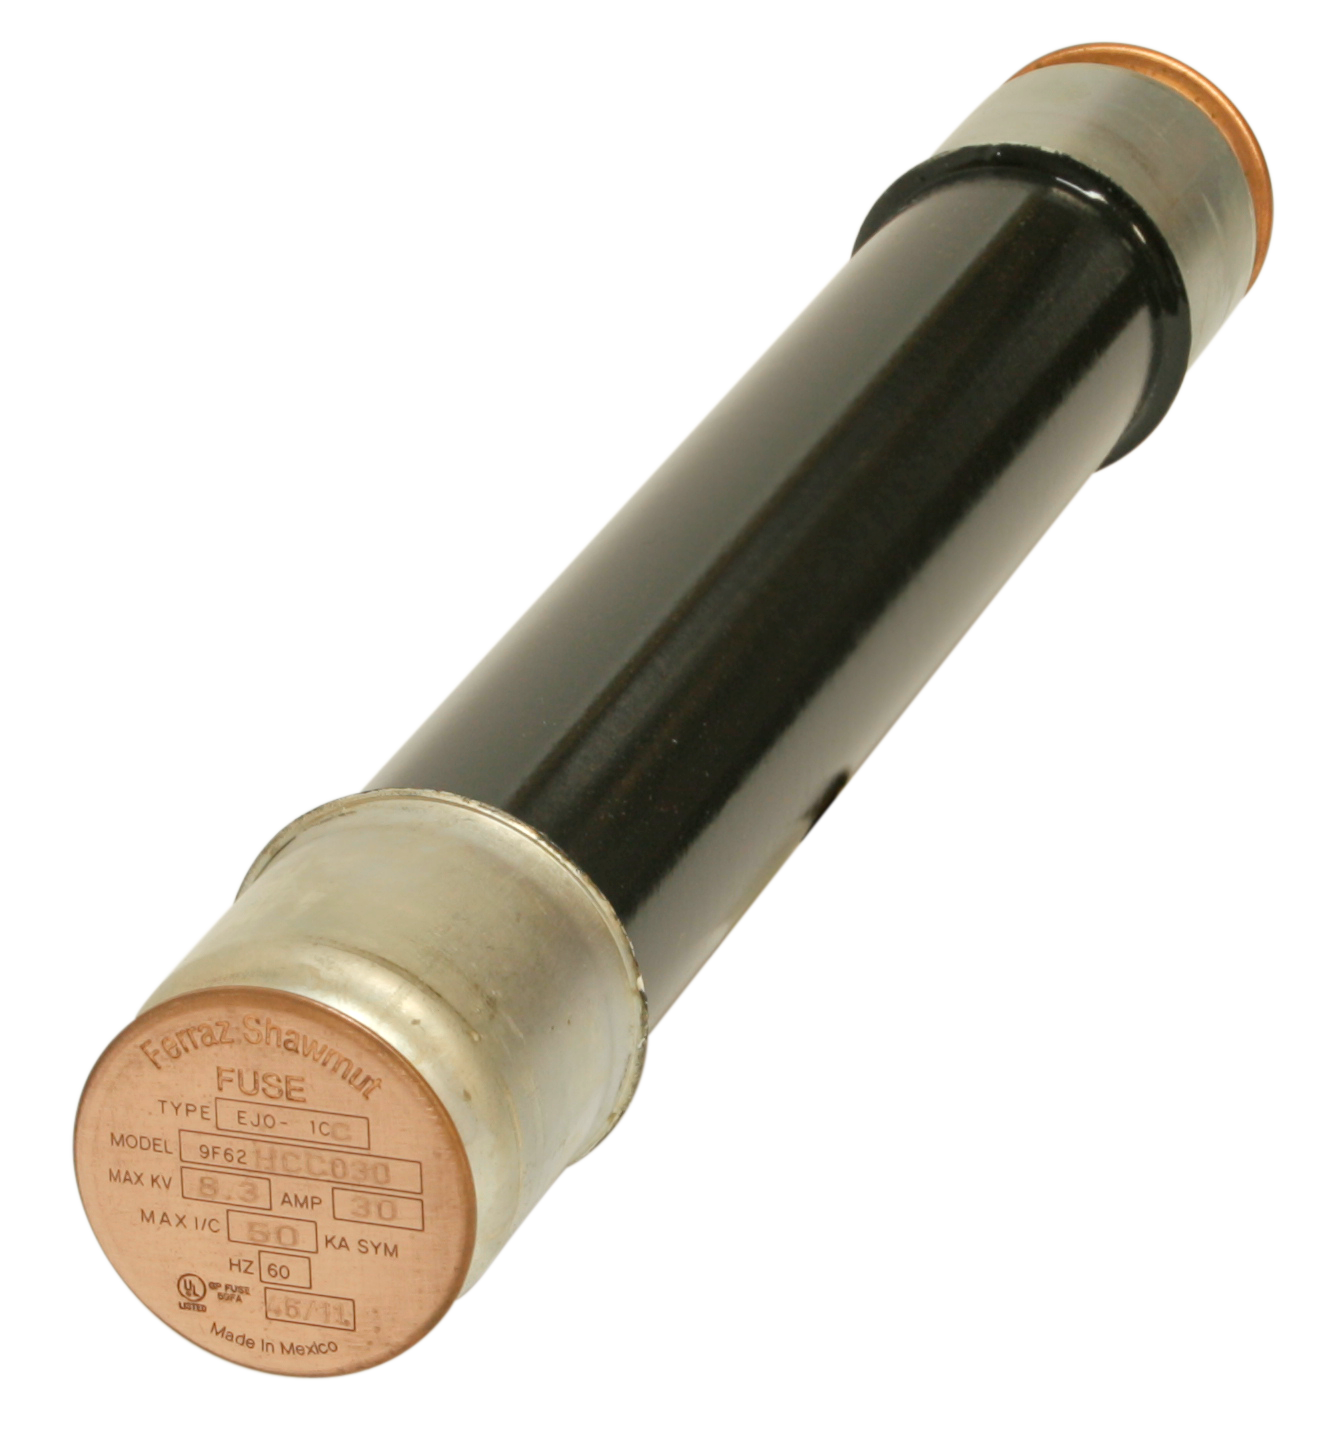 9F62DCC100 (GENERAL PURPOSE CL POWER FUSES)